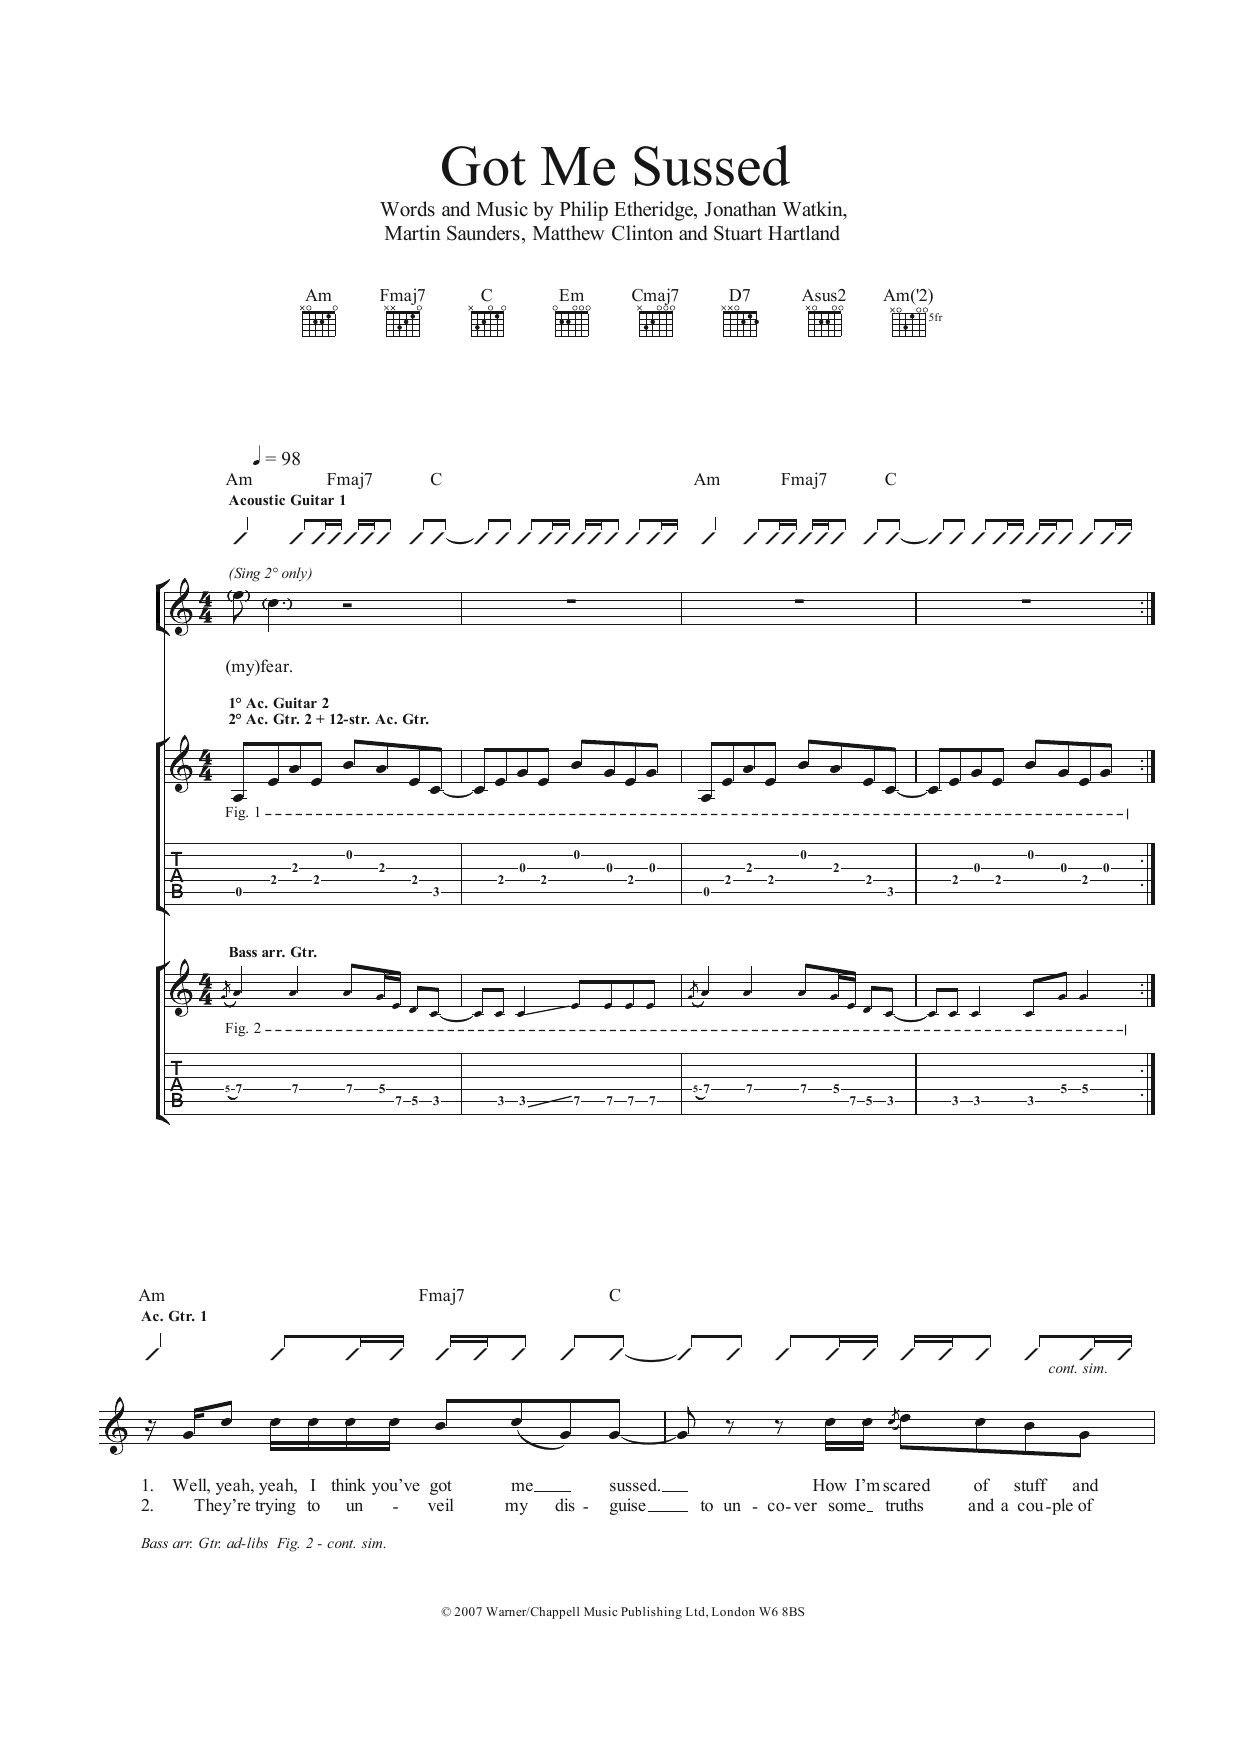 Got Me Sussed Sheet Music